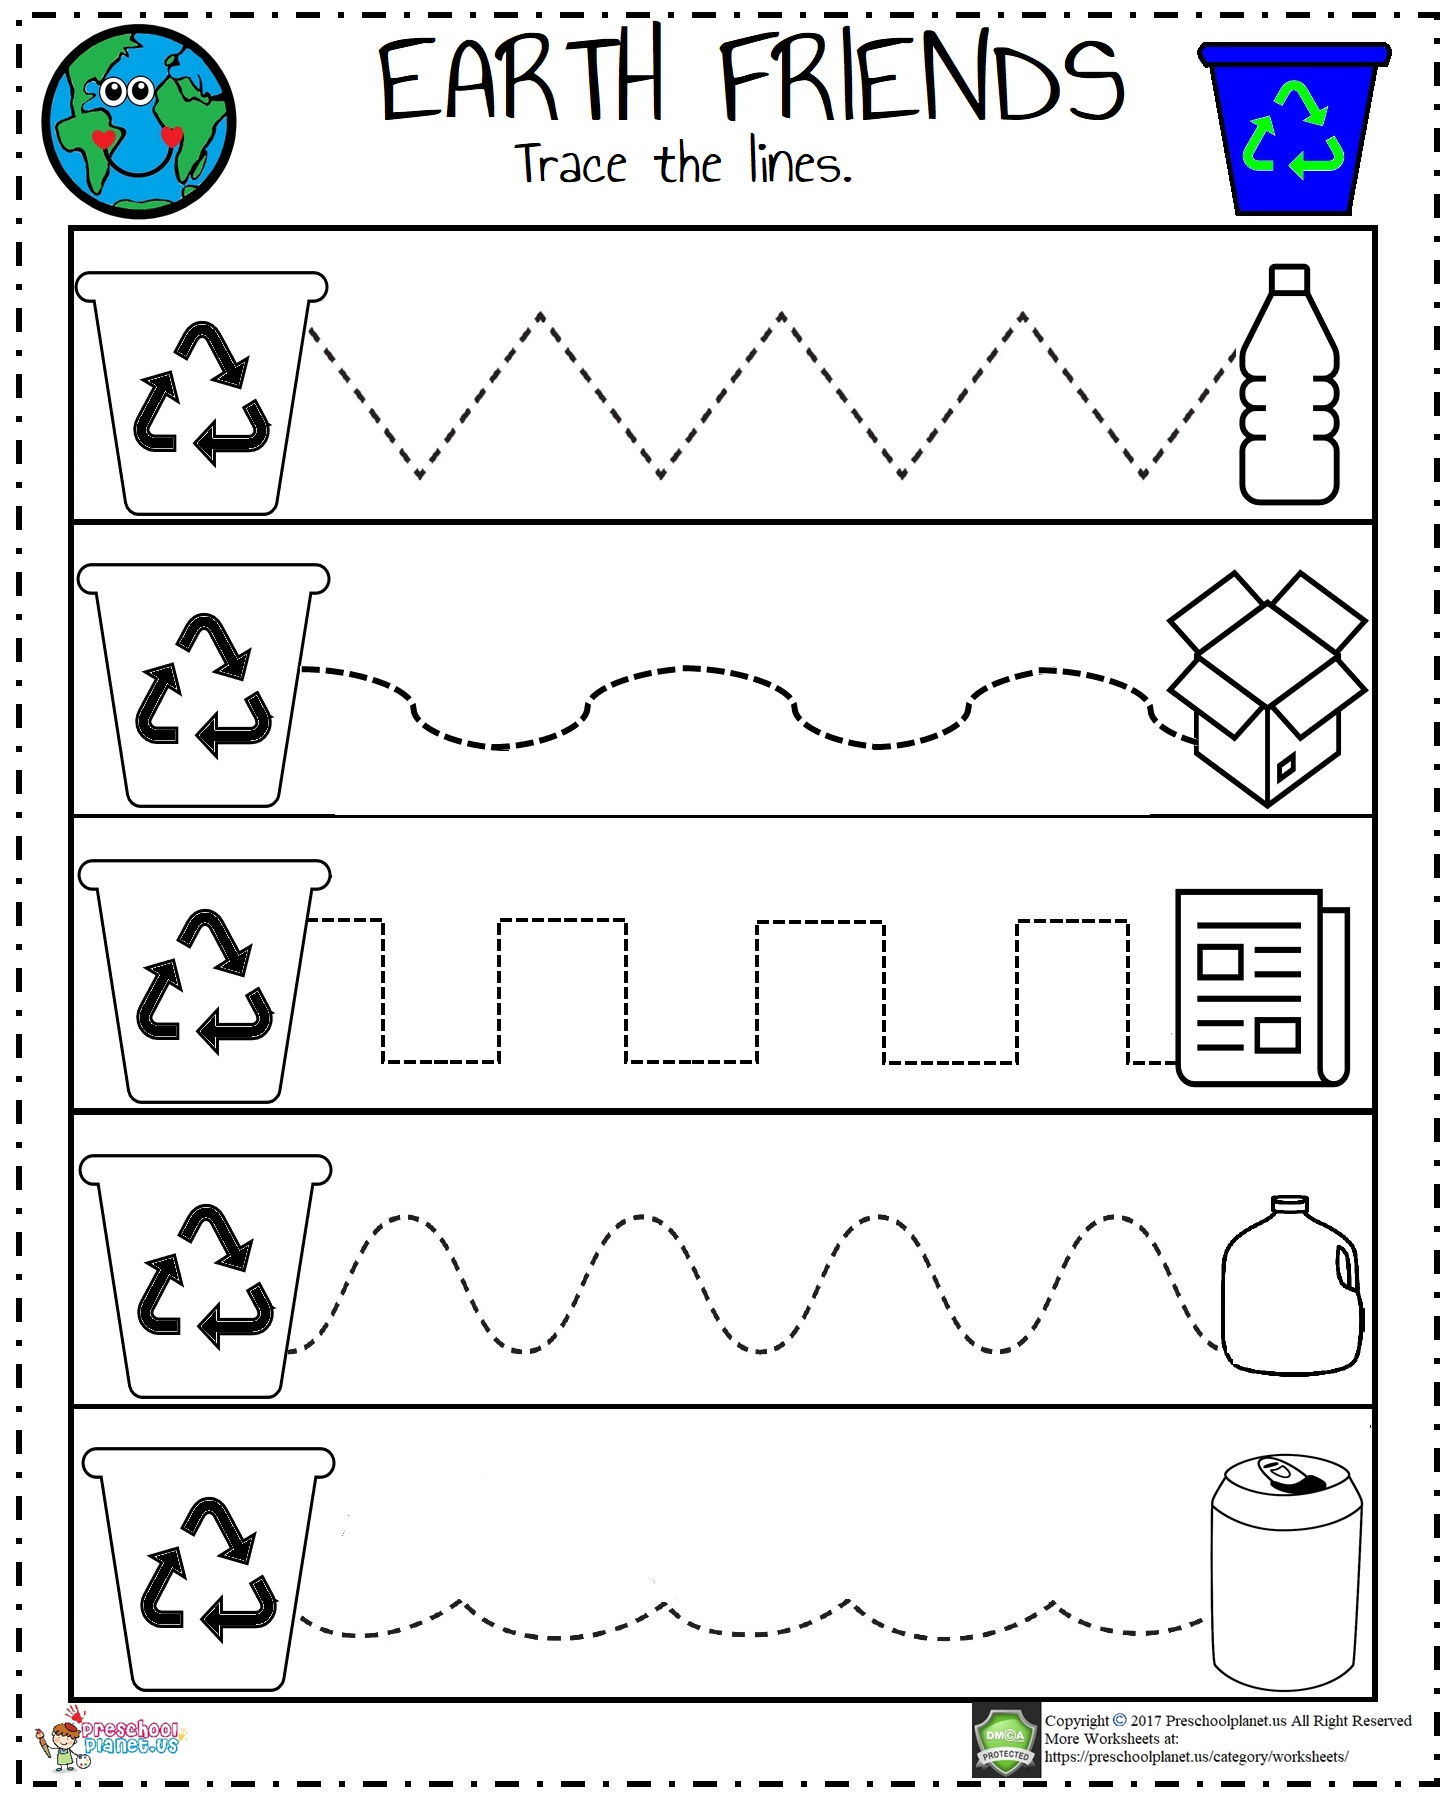 Recycle Worksheet For Preschool Preschoolplanet